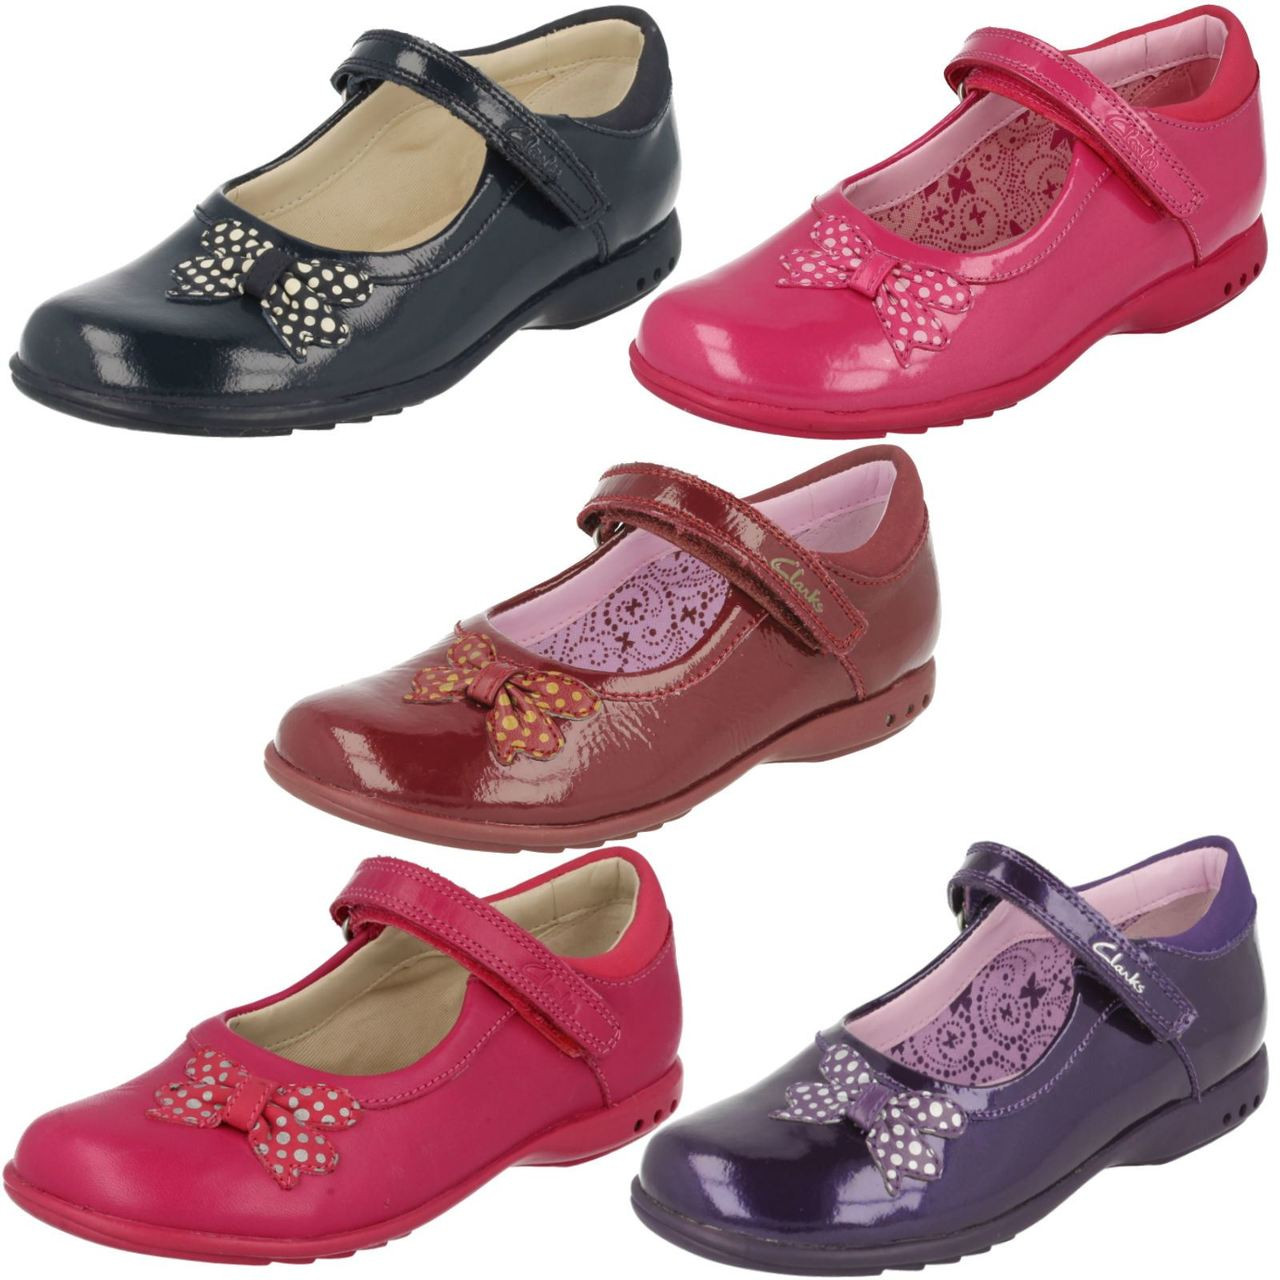 Clarks Girls Trixi Wish Inf Metallic Leather Smart Shoes With Flashing Lights